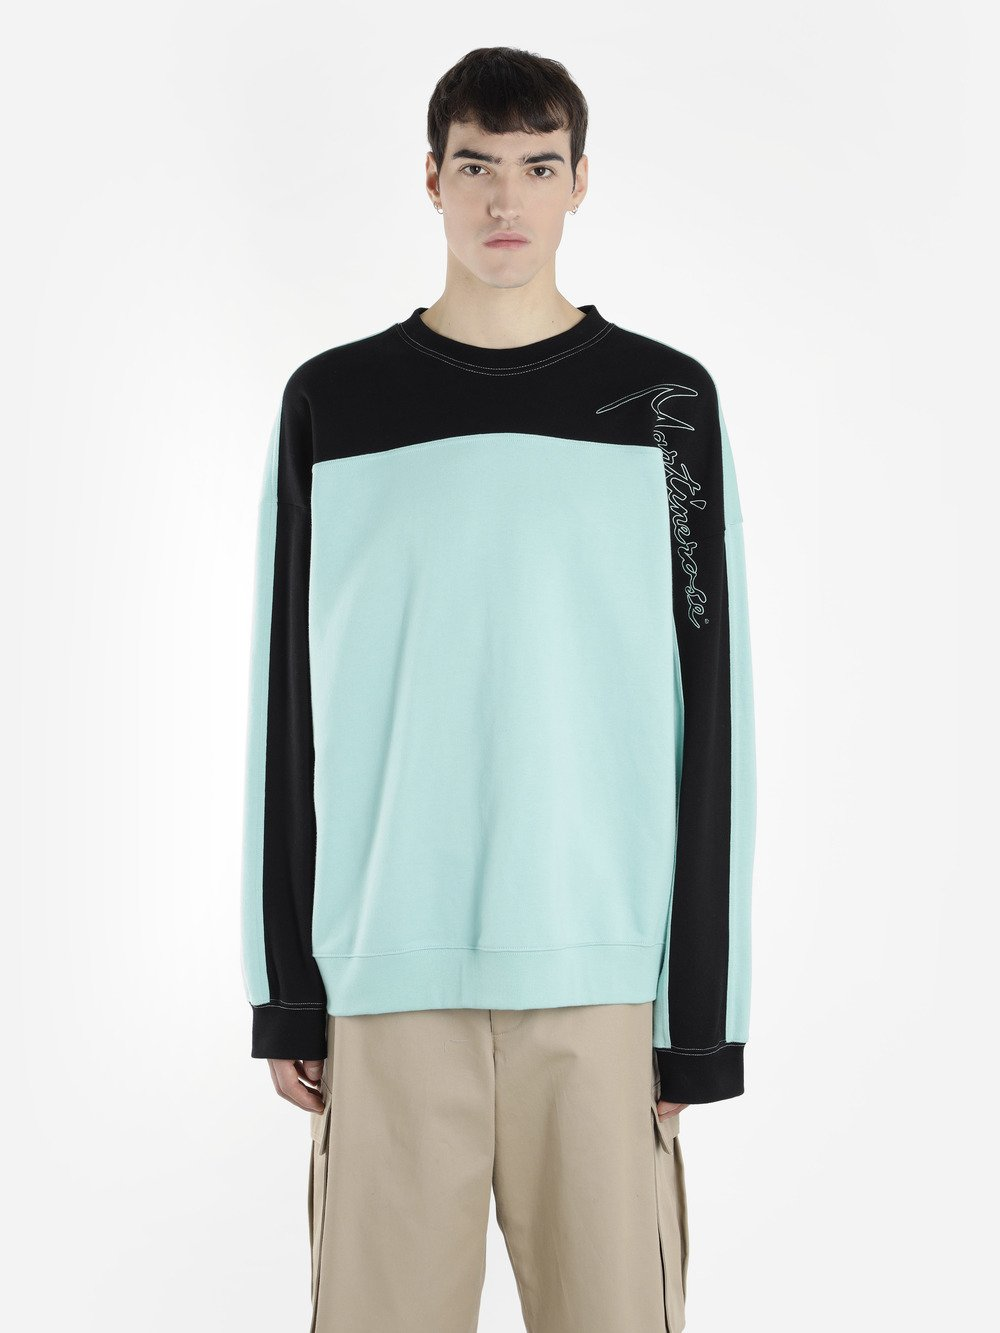 MARTINE ROSE Logo-Embroidered Cotton Sweater in Green